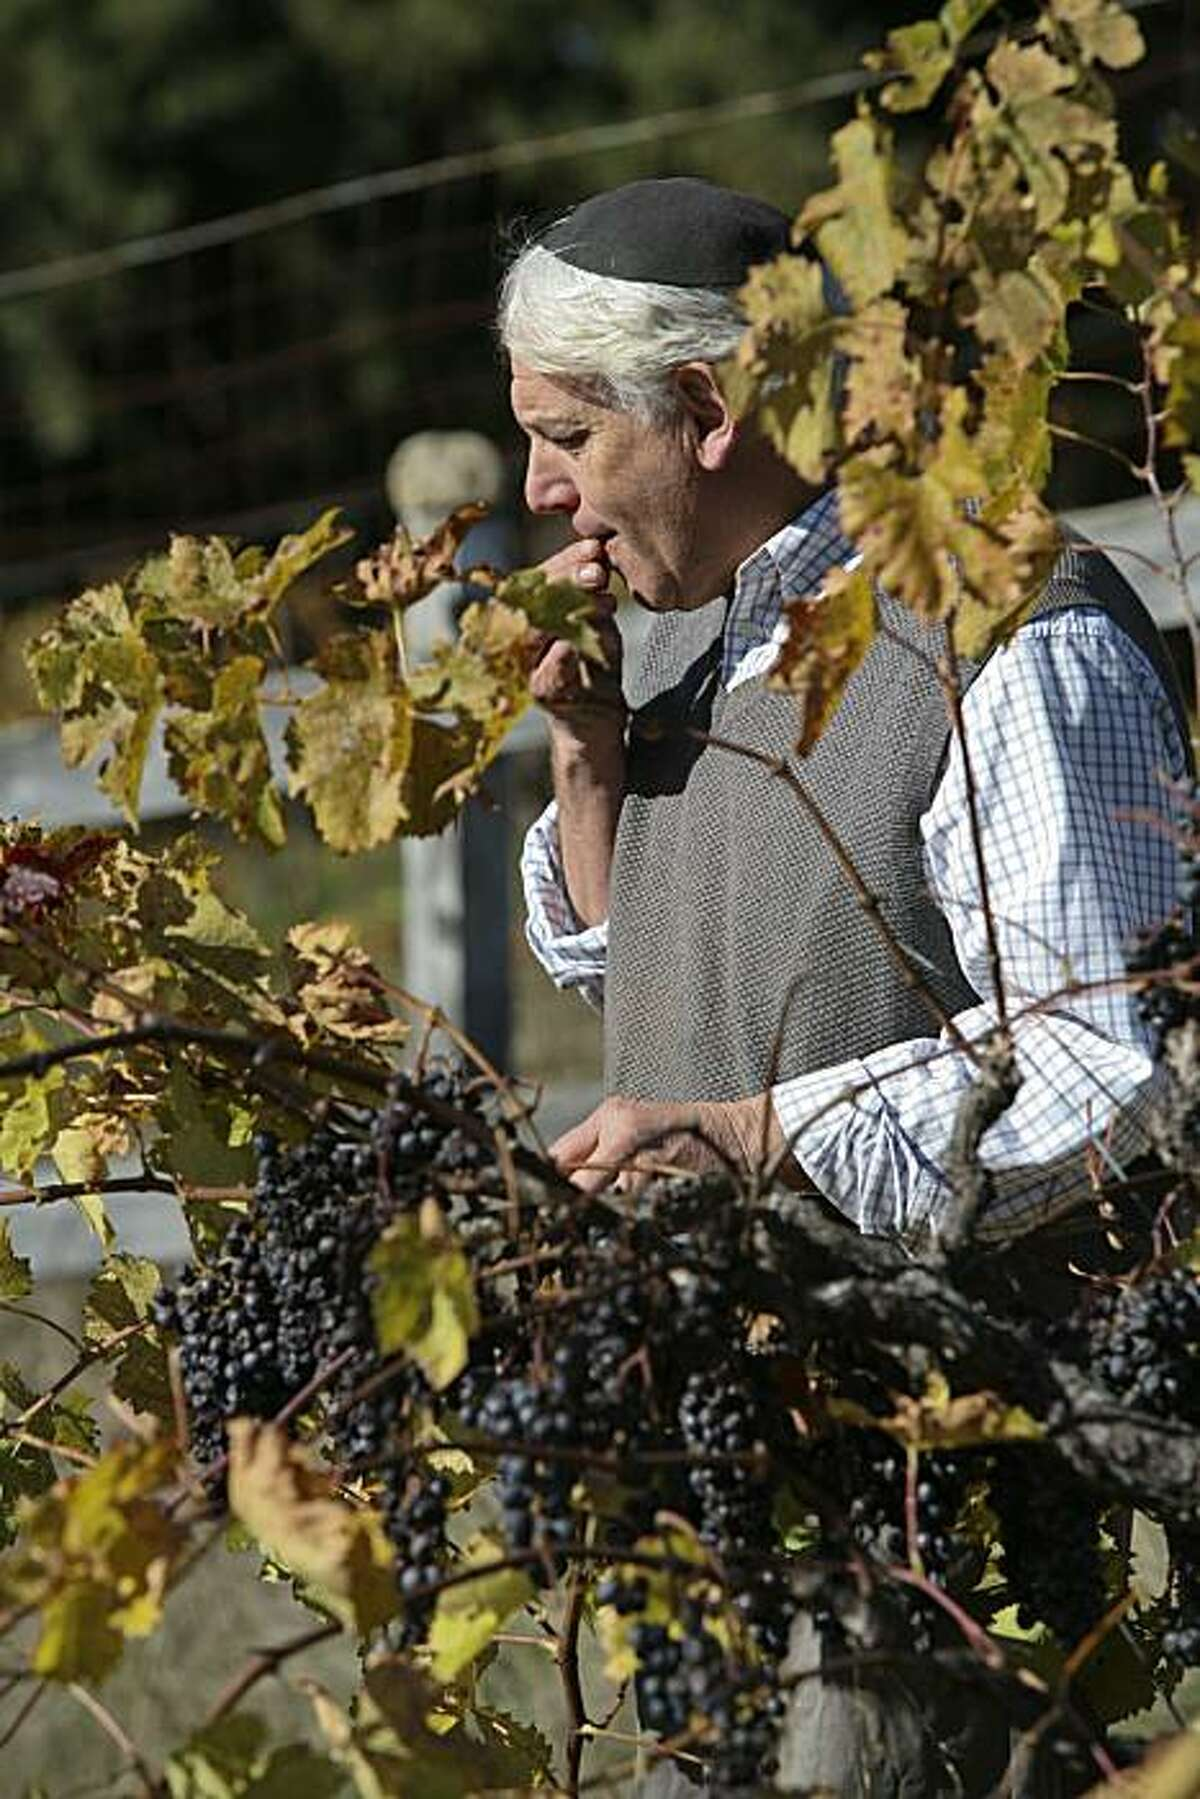 Benyamin Cantz tastes Merlot grapes that died on the vine before harvest while touring his three and a half acre vineyard in the Santa Cruz Mountains on Monday, November 29, 2010 in Santa Cruz, Calif. Most clusters in Cantz's vineyard died on the vines due to hot weather this year.